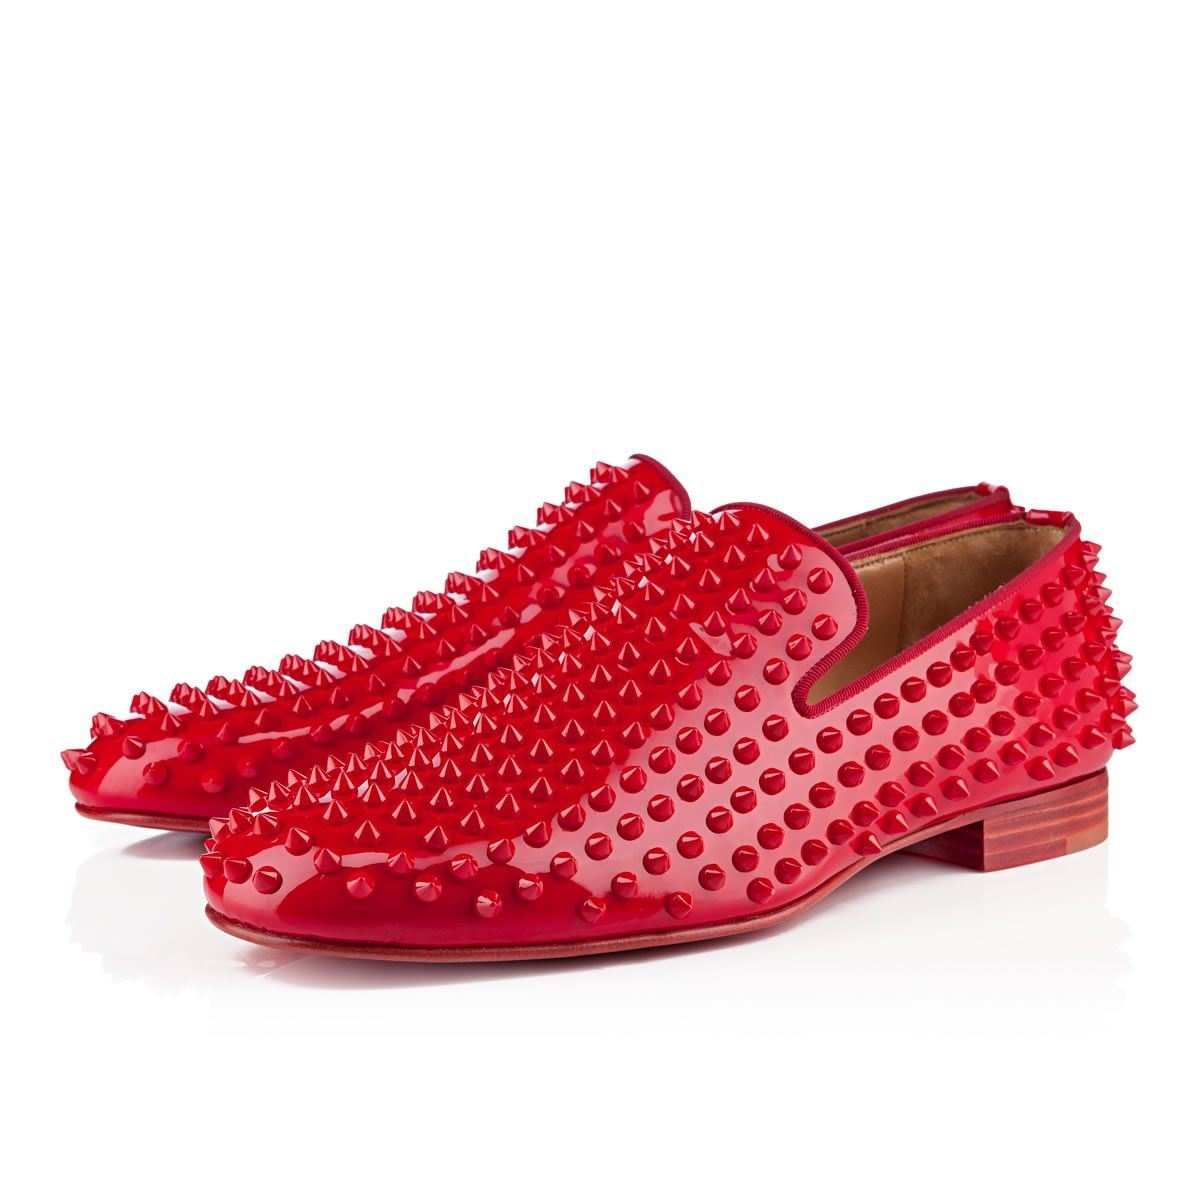 Christian Louboutin Rollerboy Mens Flat Red Patent Leather